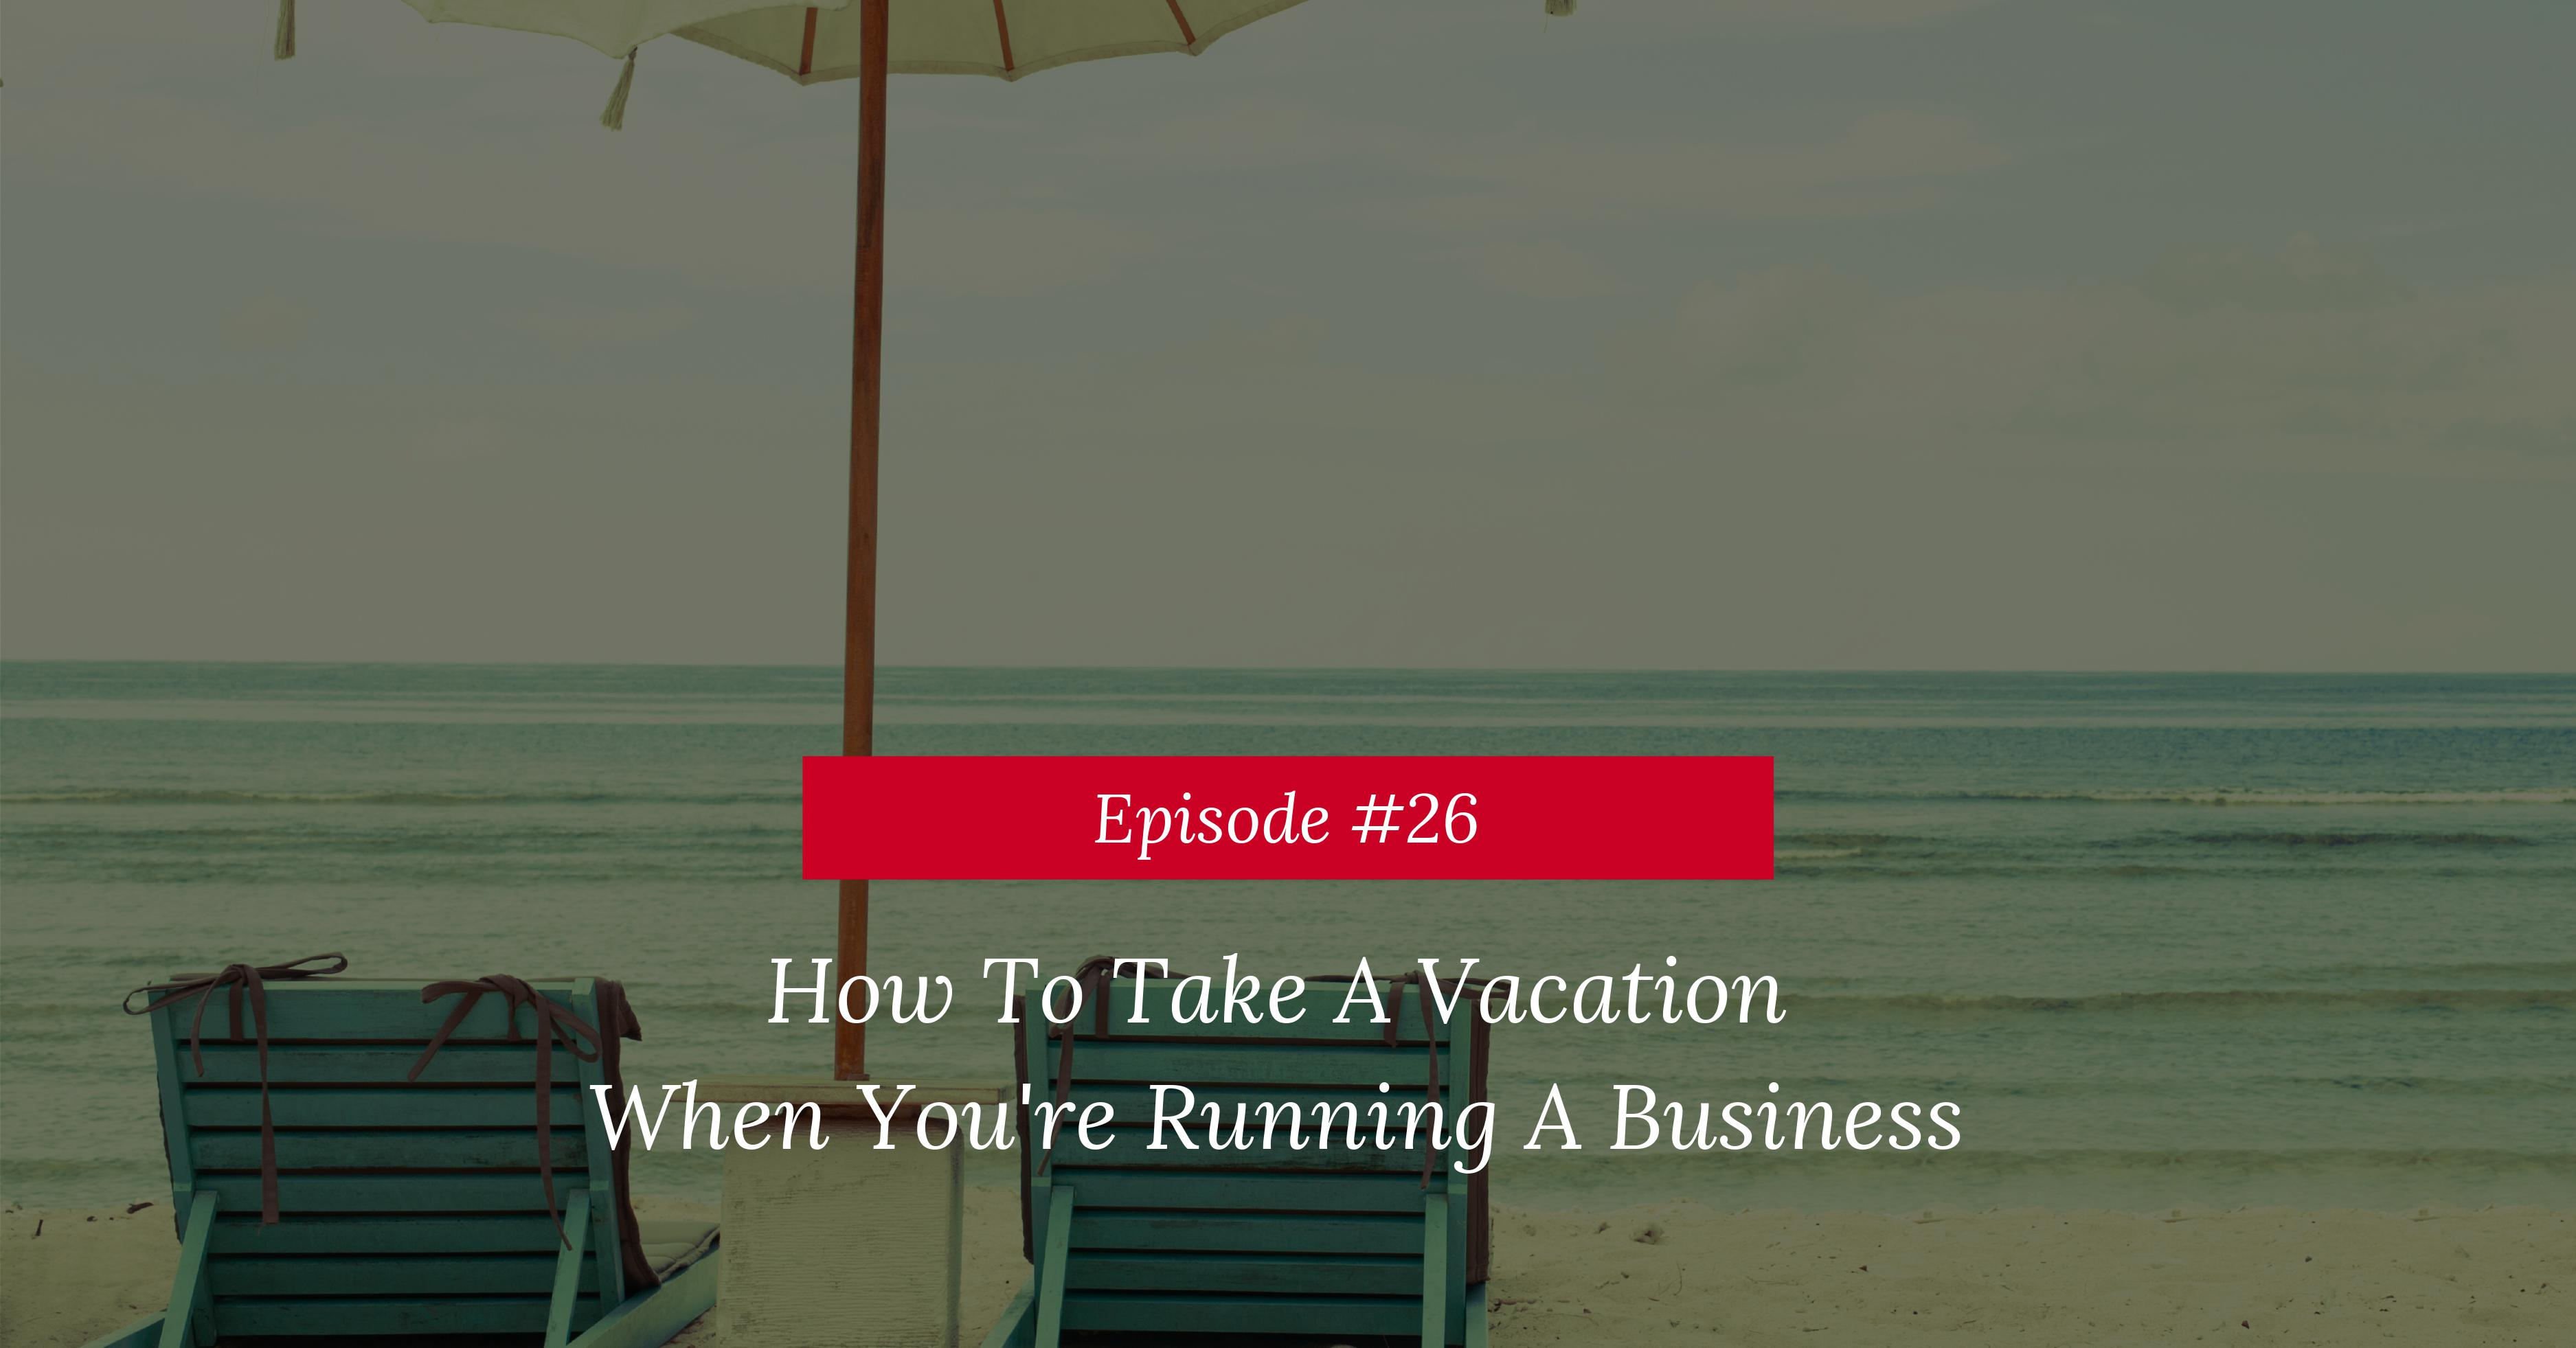 How to take a vacation when you're running a business